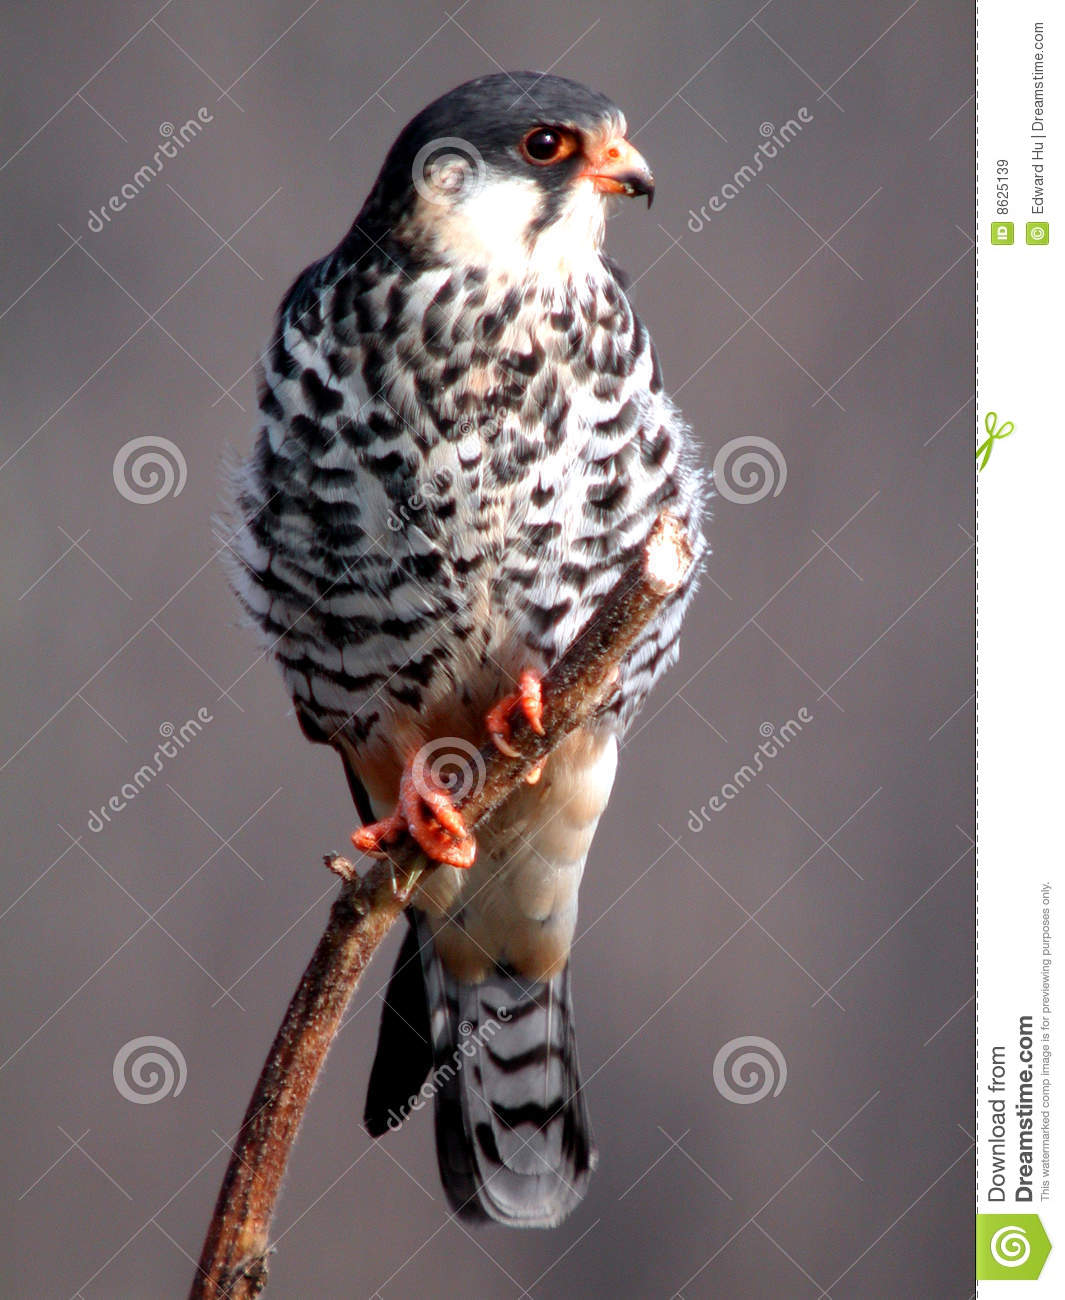 Amur Falcon clipart #5, Download drawings